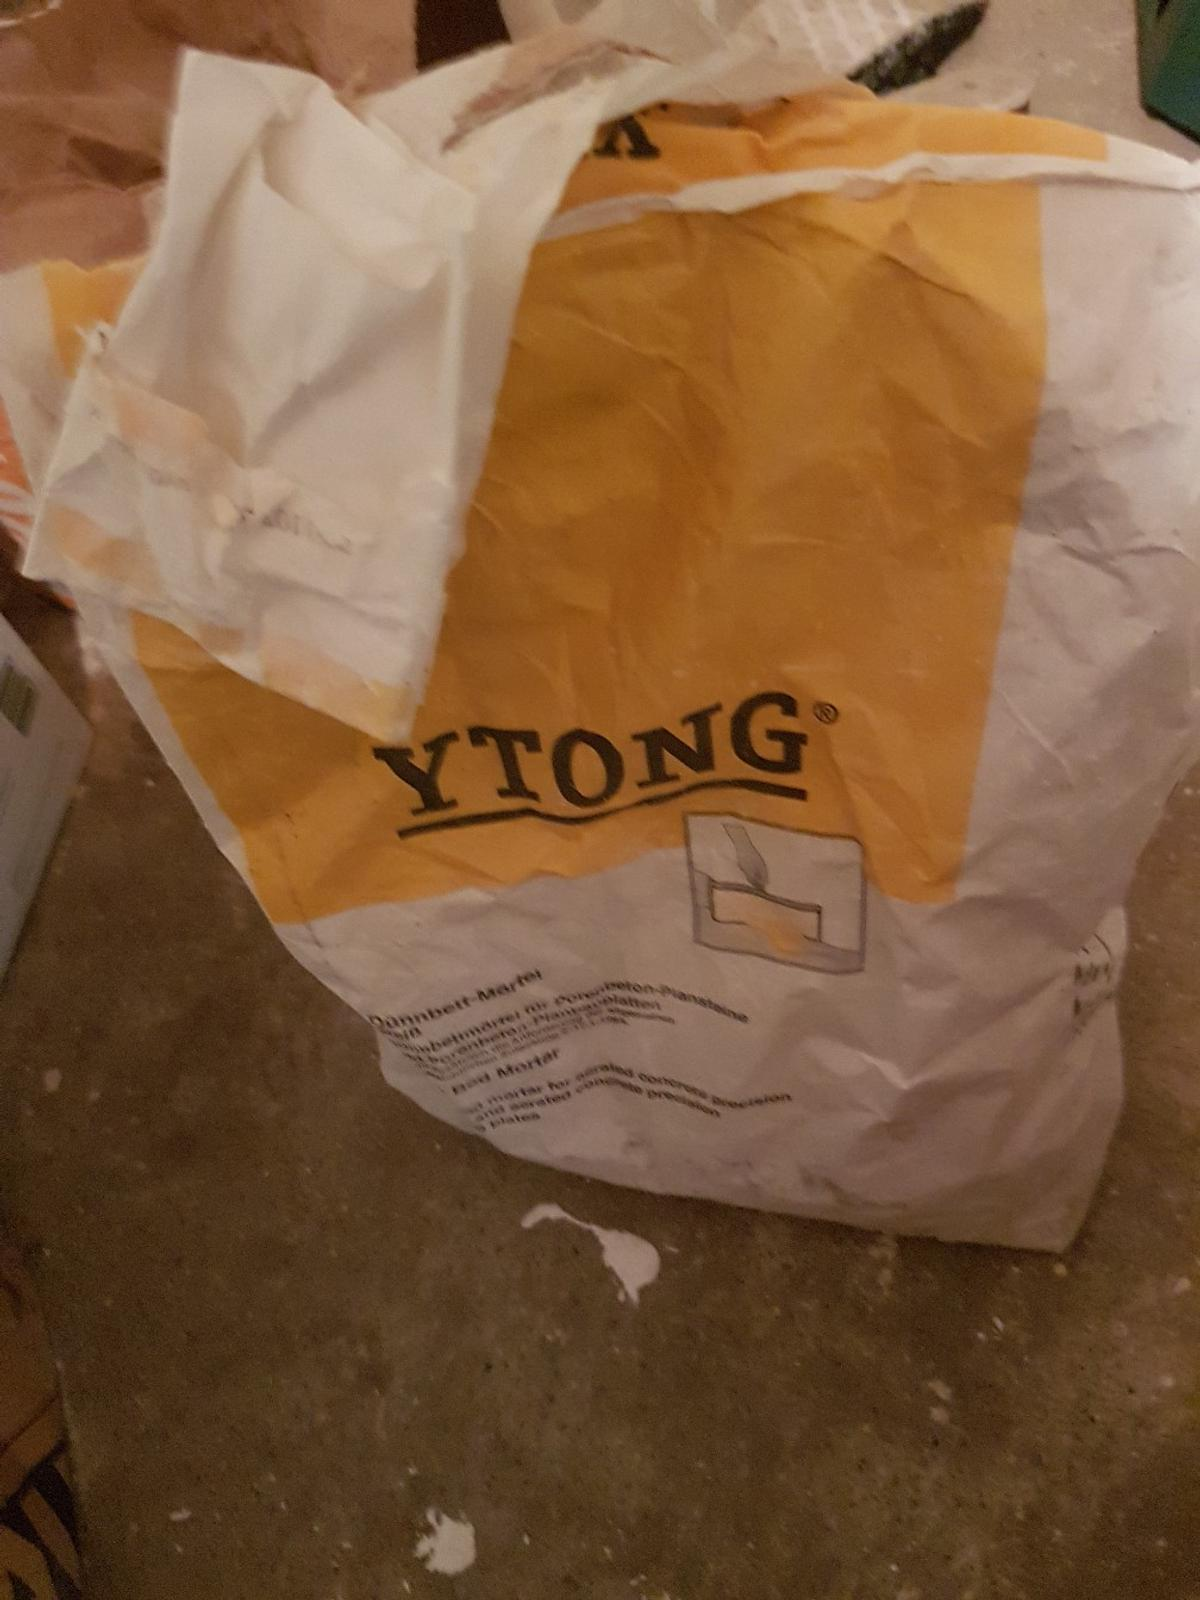 Ytong Steine Und Mortel In 5121 For 25 00 For Sale Shpock